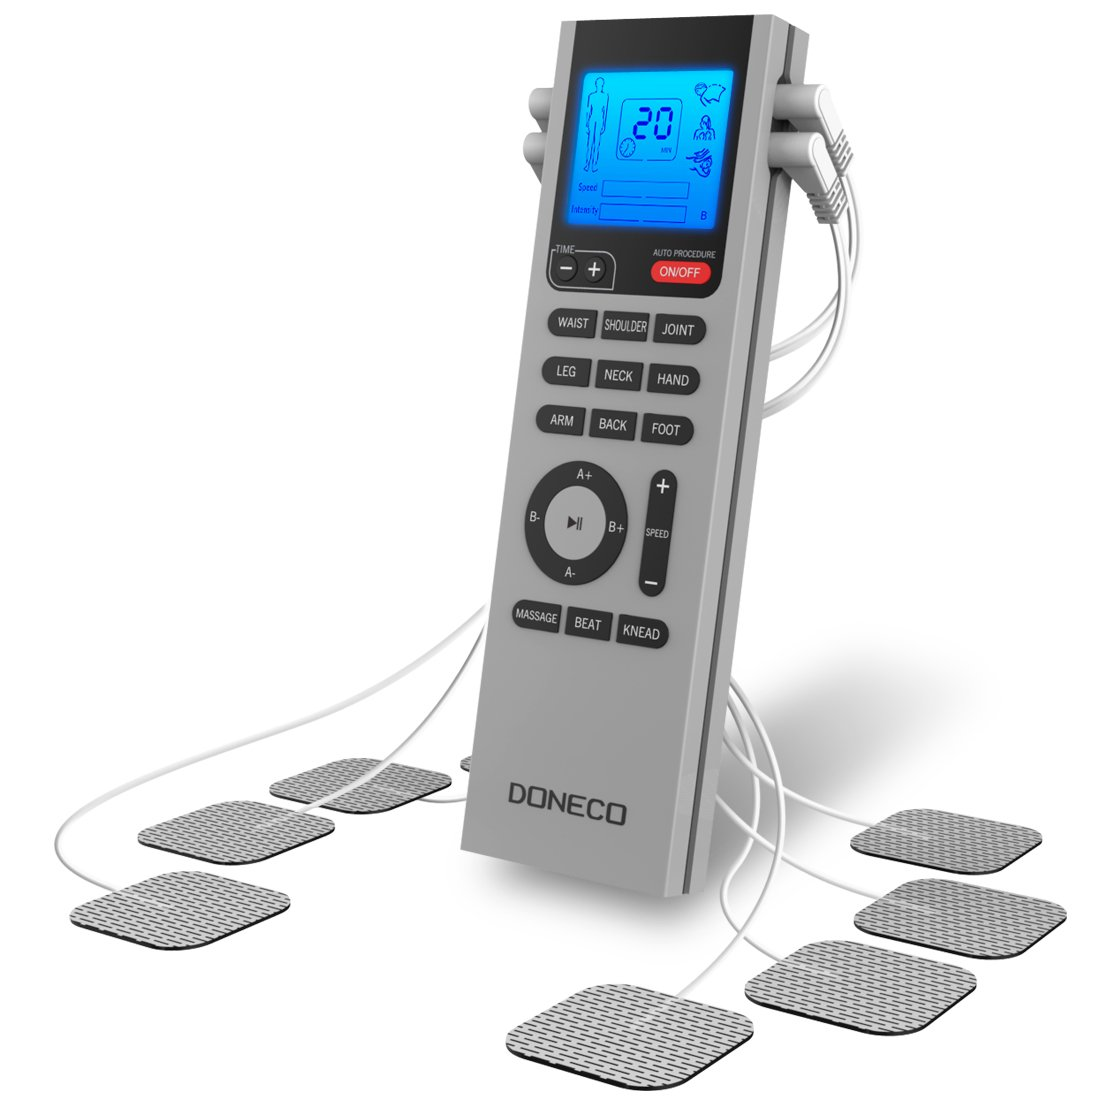 DONECO Electronic Pulse Massager - Portable TENS Unit with Adjustable Speed and Intensity for Muscle Pain Relief - Features 4 Outputs, 8 Pads and LCD Display Screen - High Quality, Batteries Included by DONECO